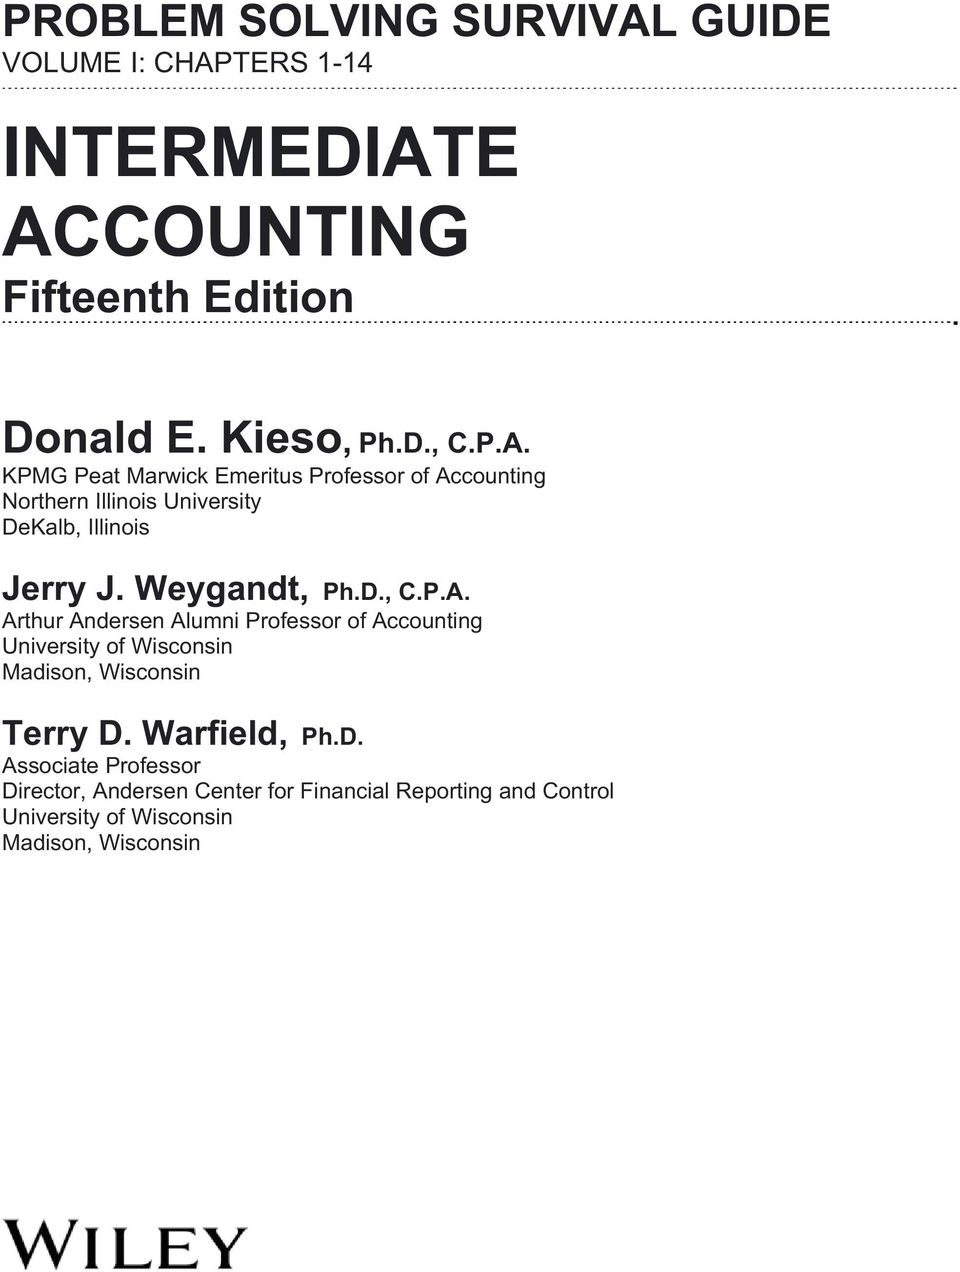 accounting problem solving